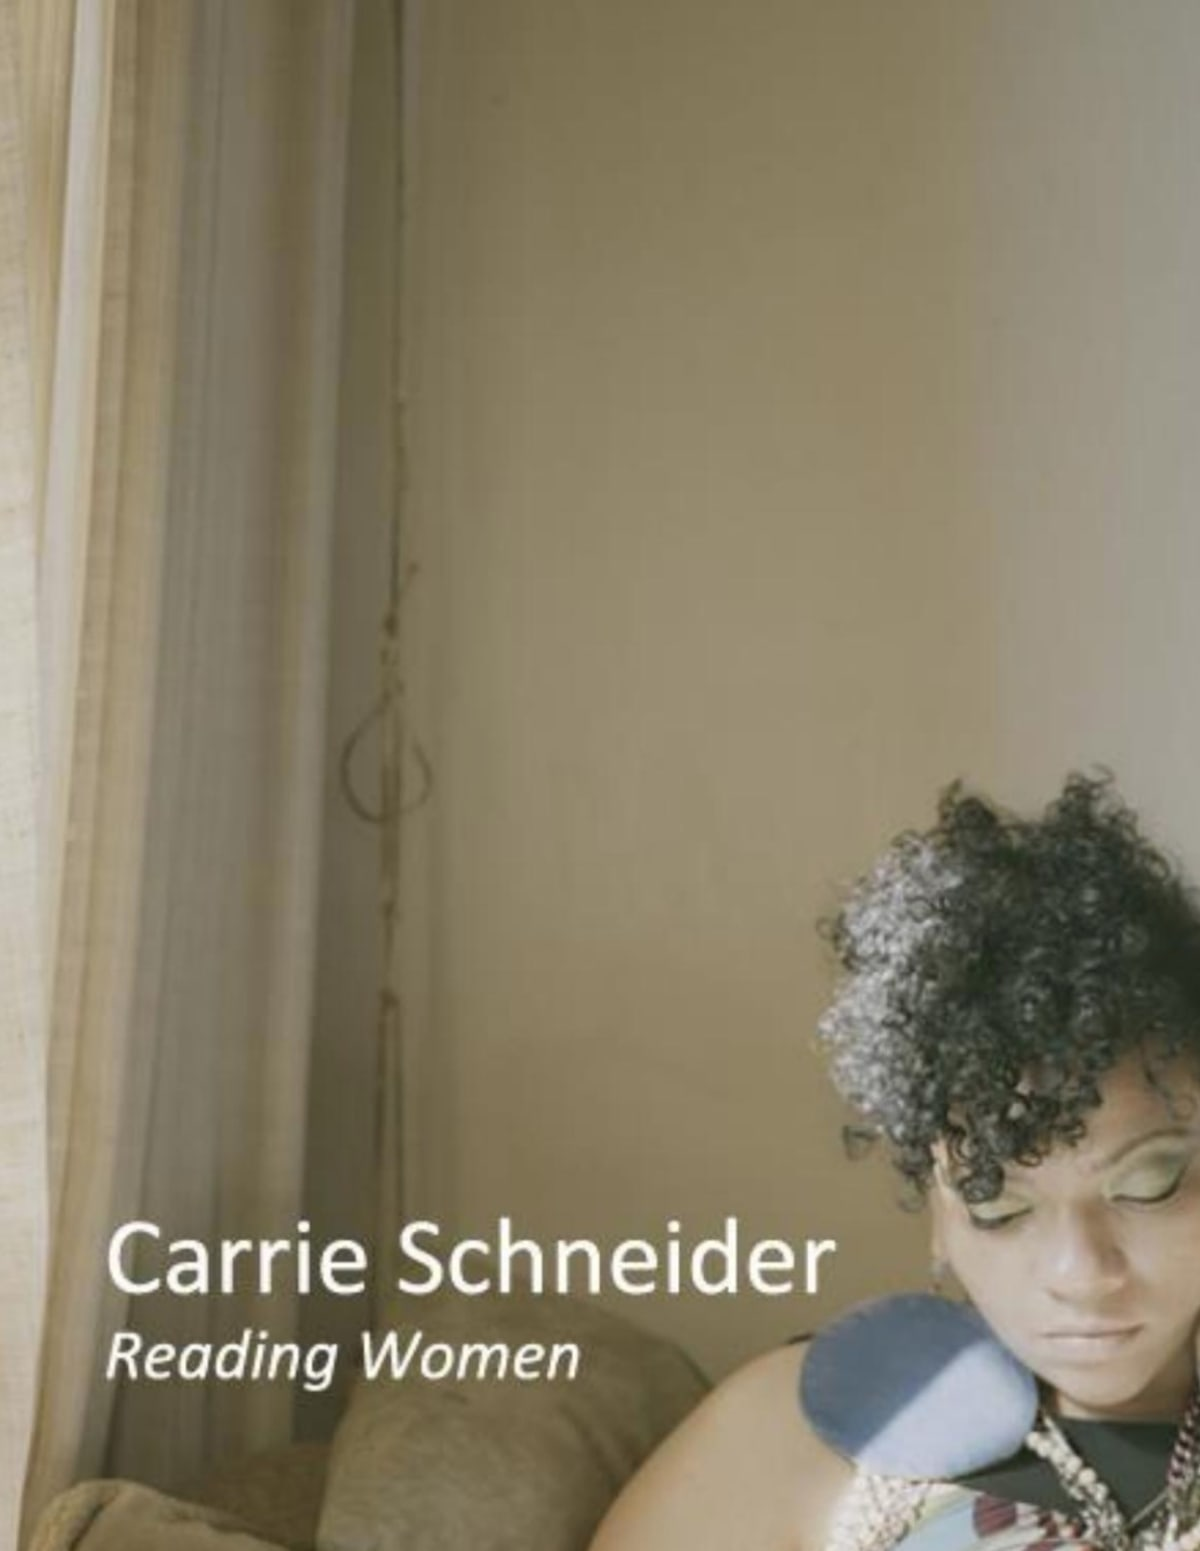 Carrie Schneider: Reading Women